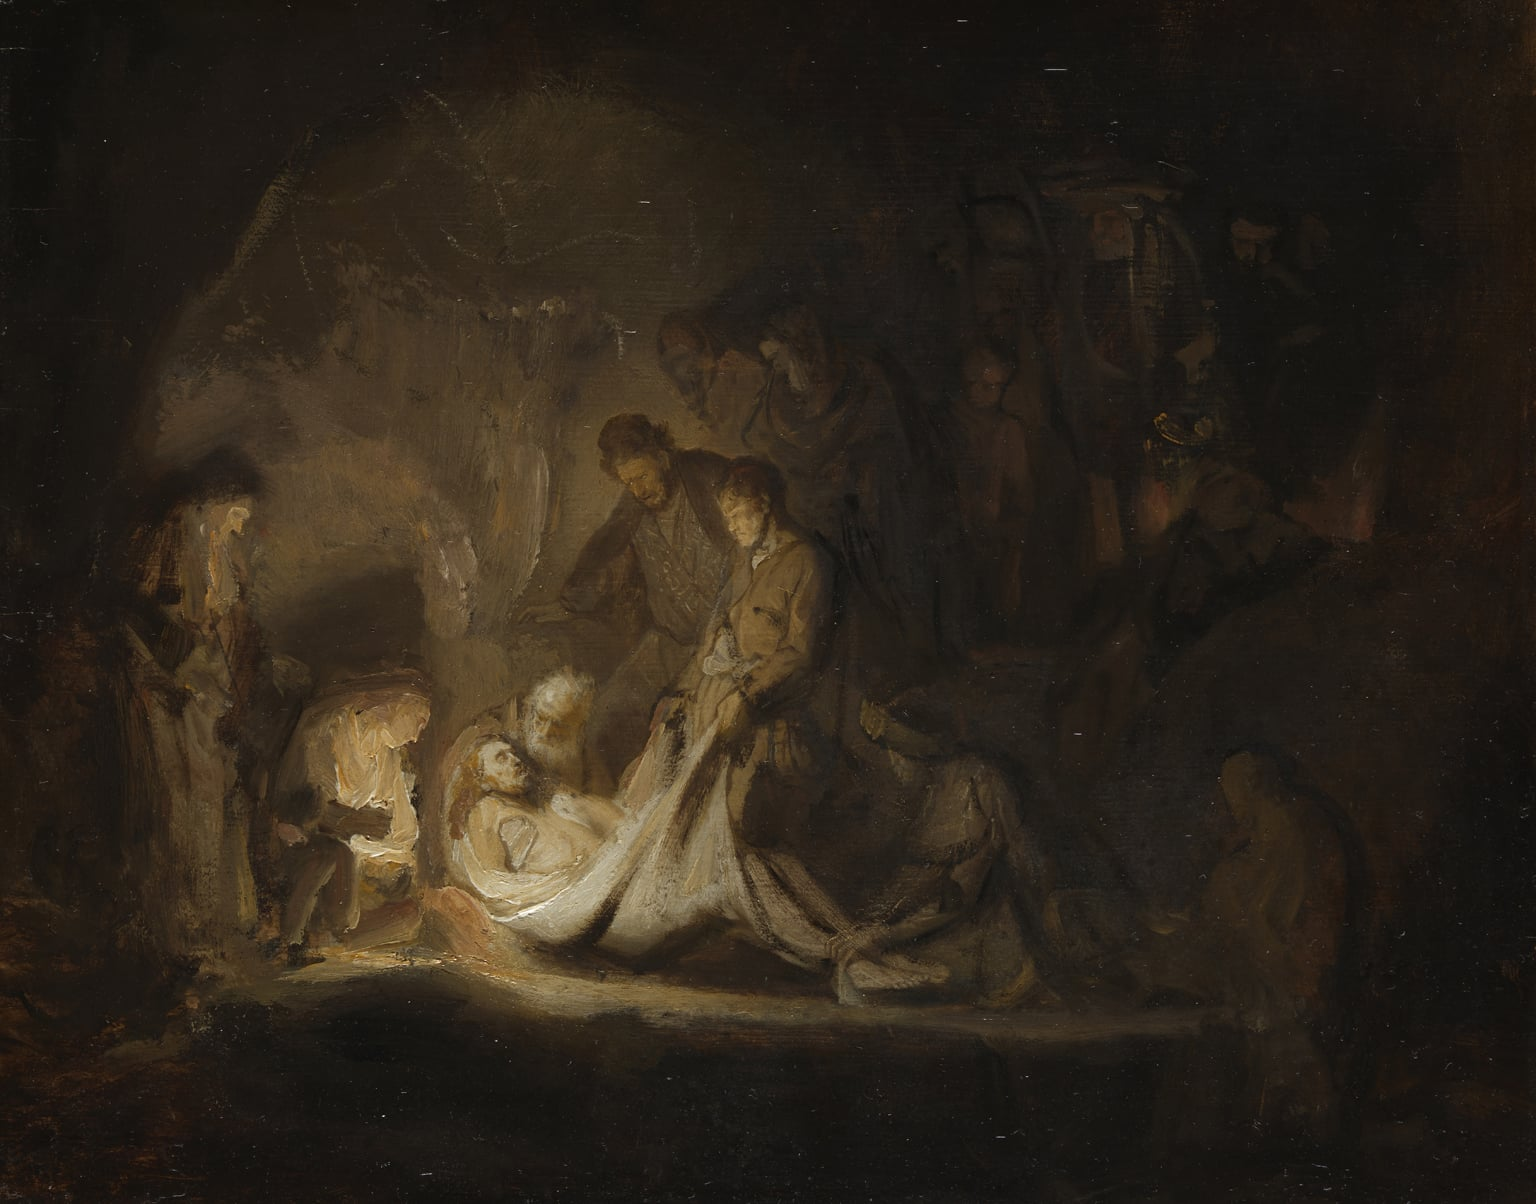 Rembrandt van Rijn - The Entombment 1635